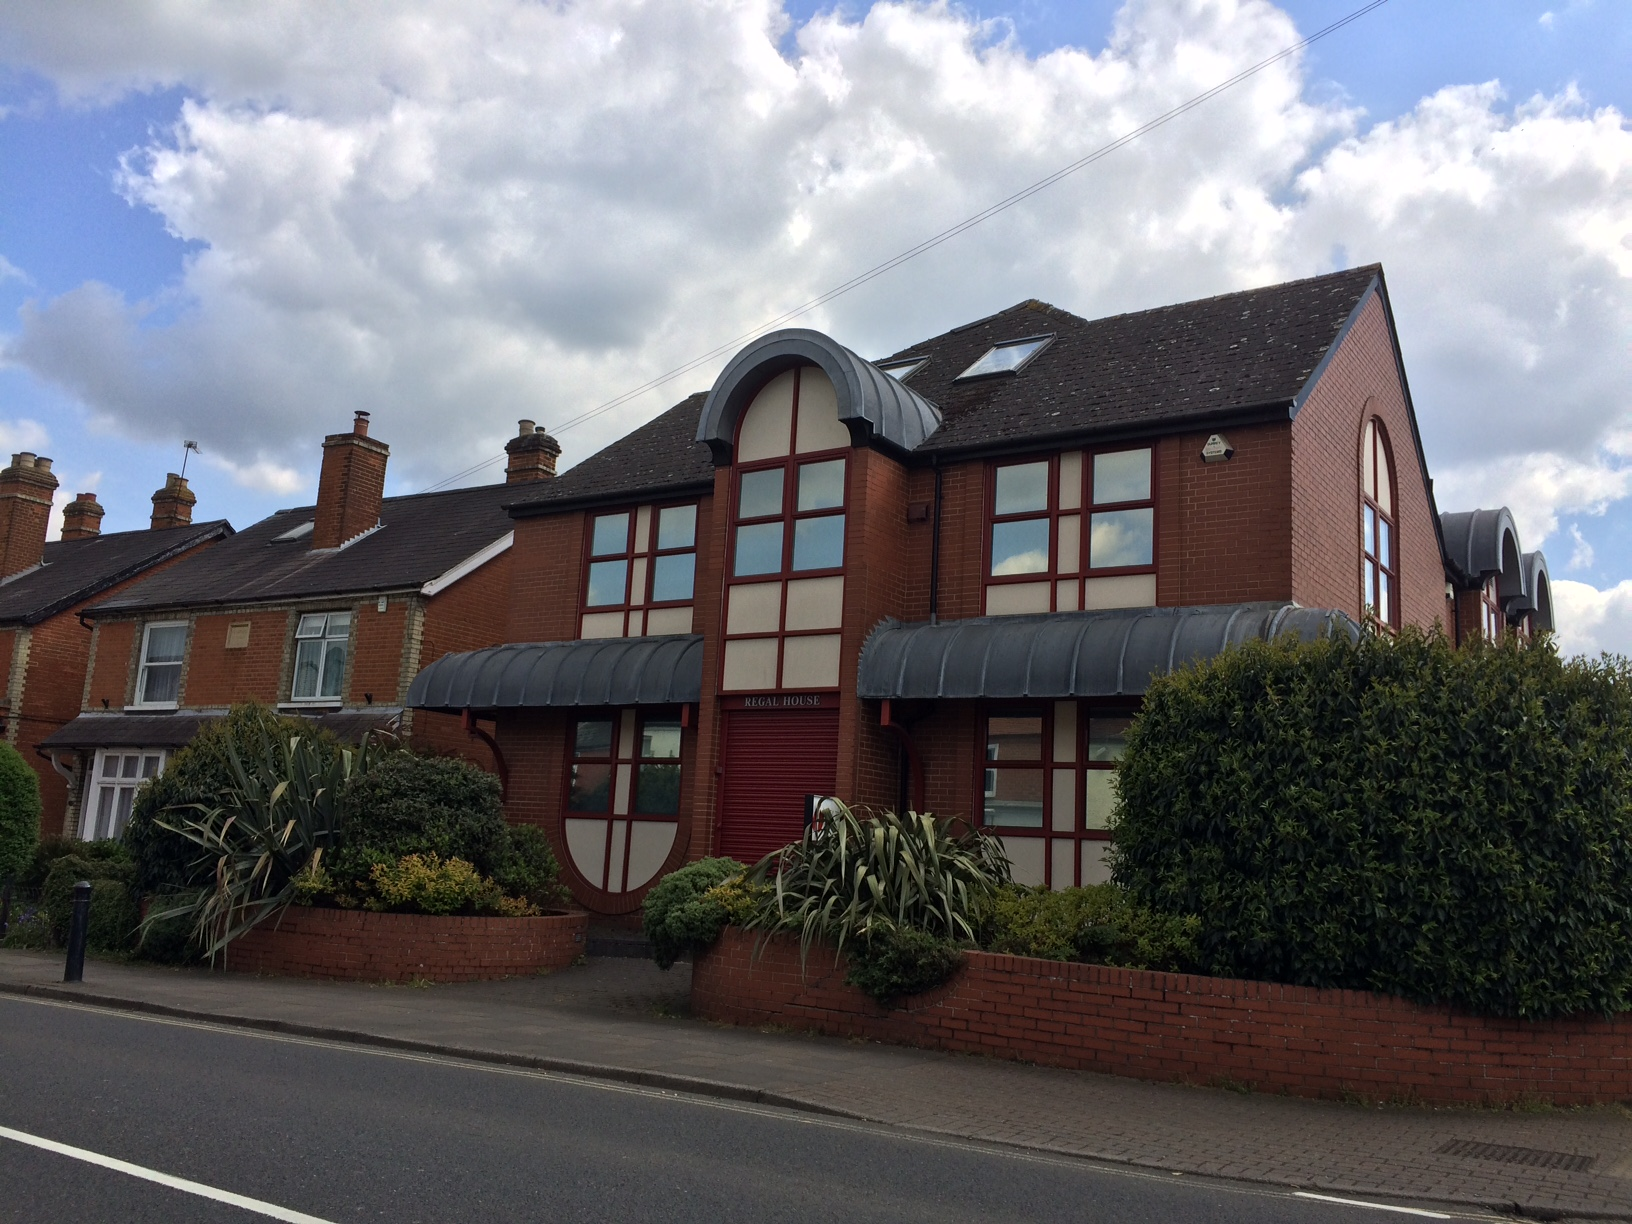 Regal House 18 High Street Bagshot GU19 5AA – freehold detached office for sale